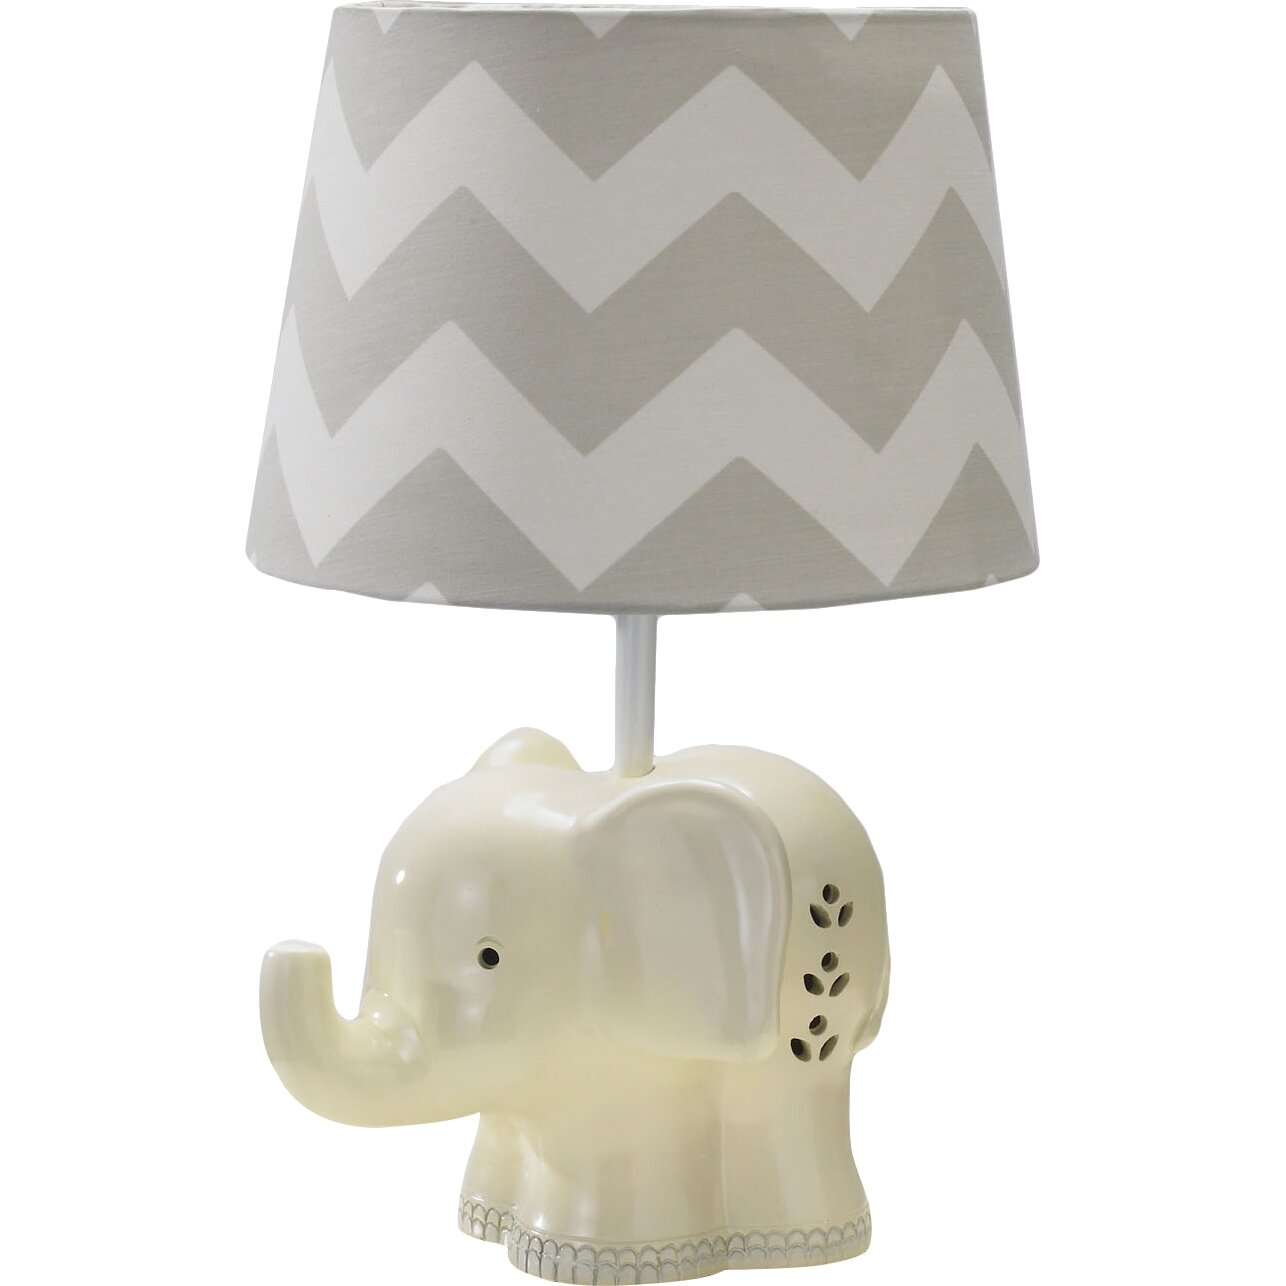 Lolli living elephant 7quot h table lamp base reviews for Table lamp elephant base